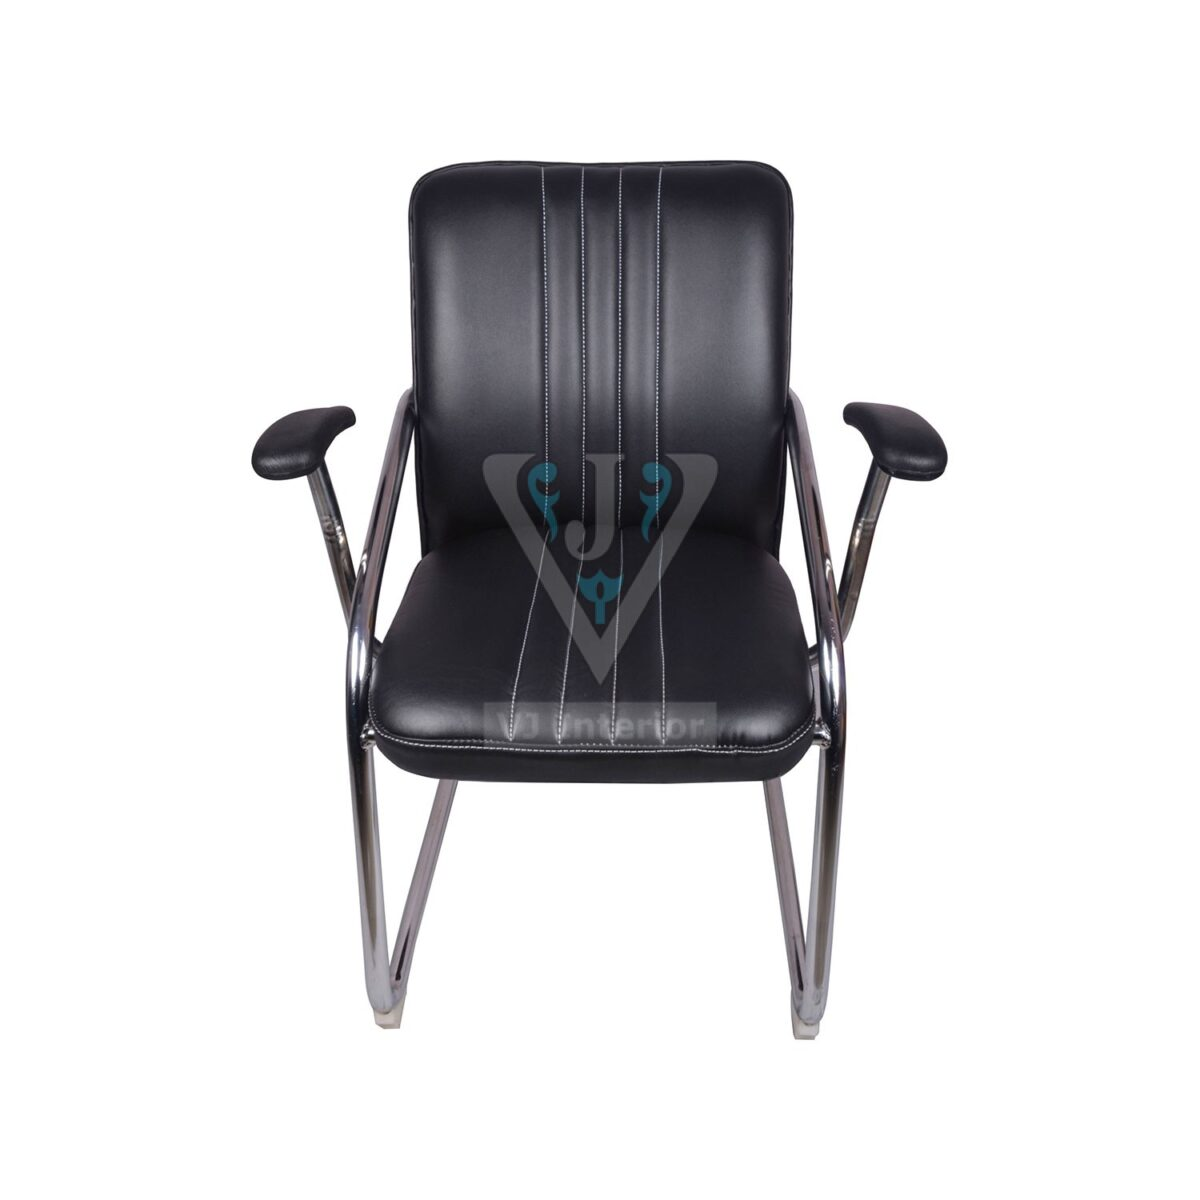 THE INVITADO MID BACK GUEST CHAIR BLACK